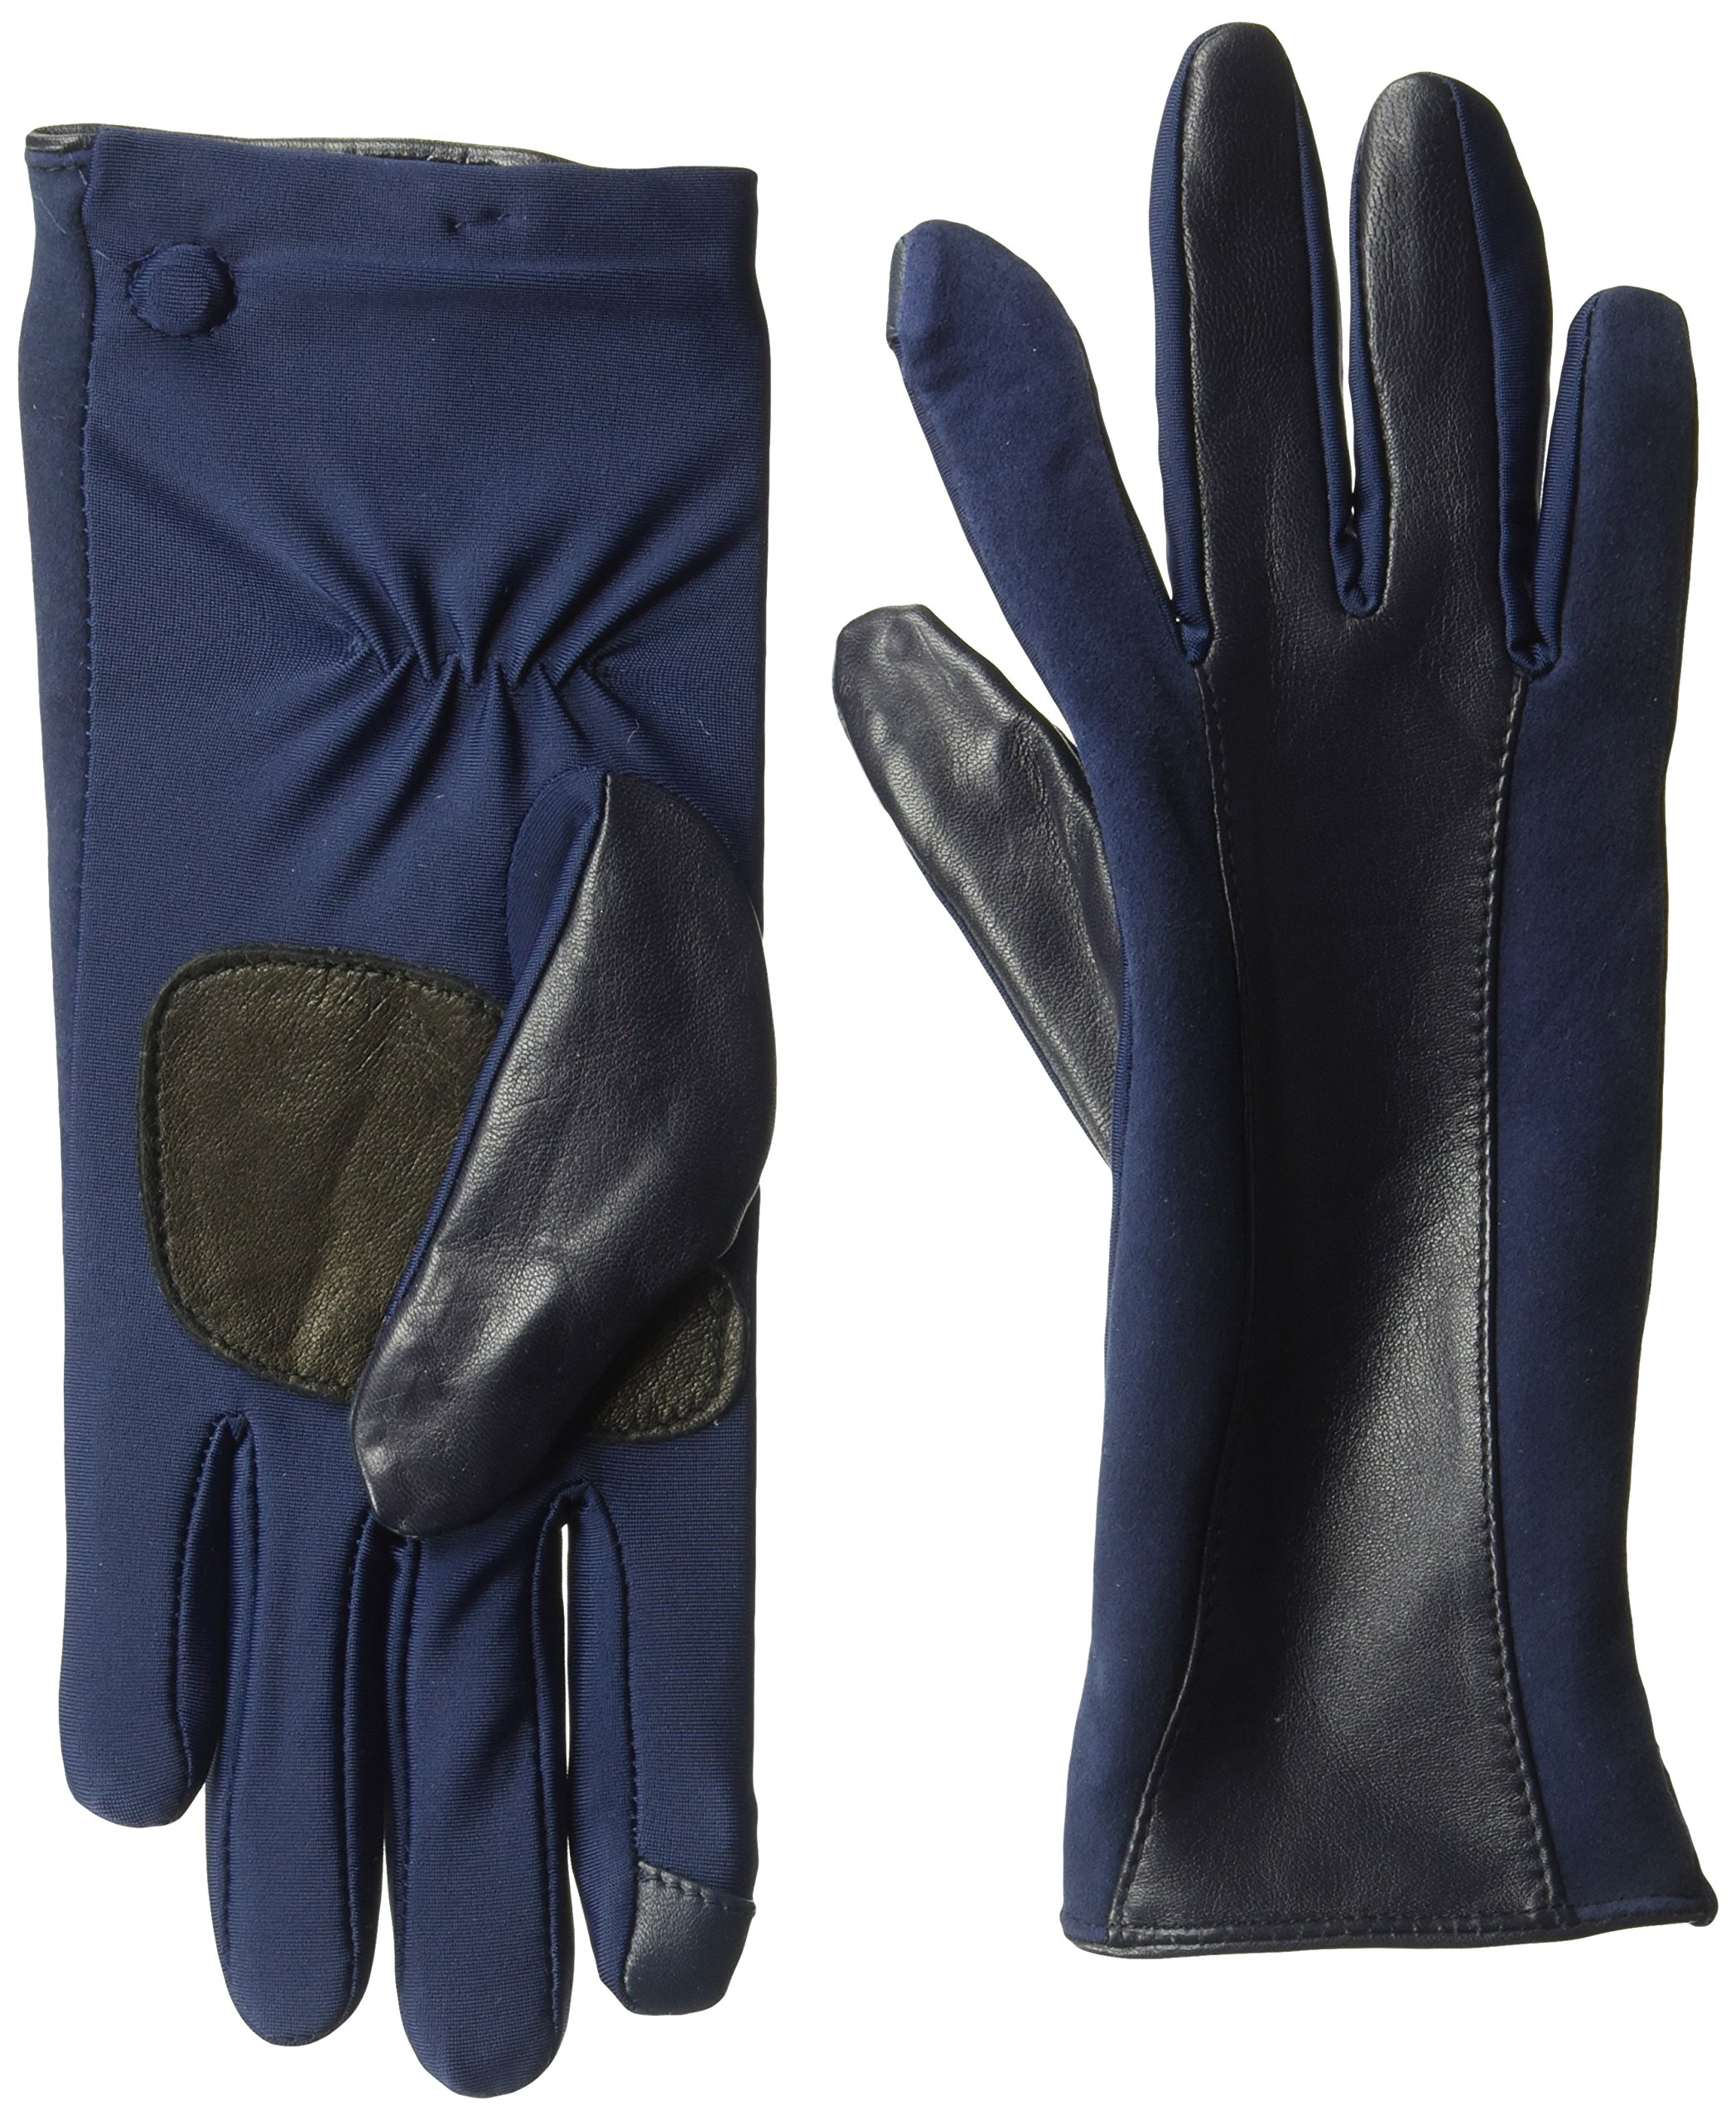 Echo Women's Leather Stripe Superfit Touch Technology Glove Accessory, -maritime navy, Medium